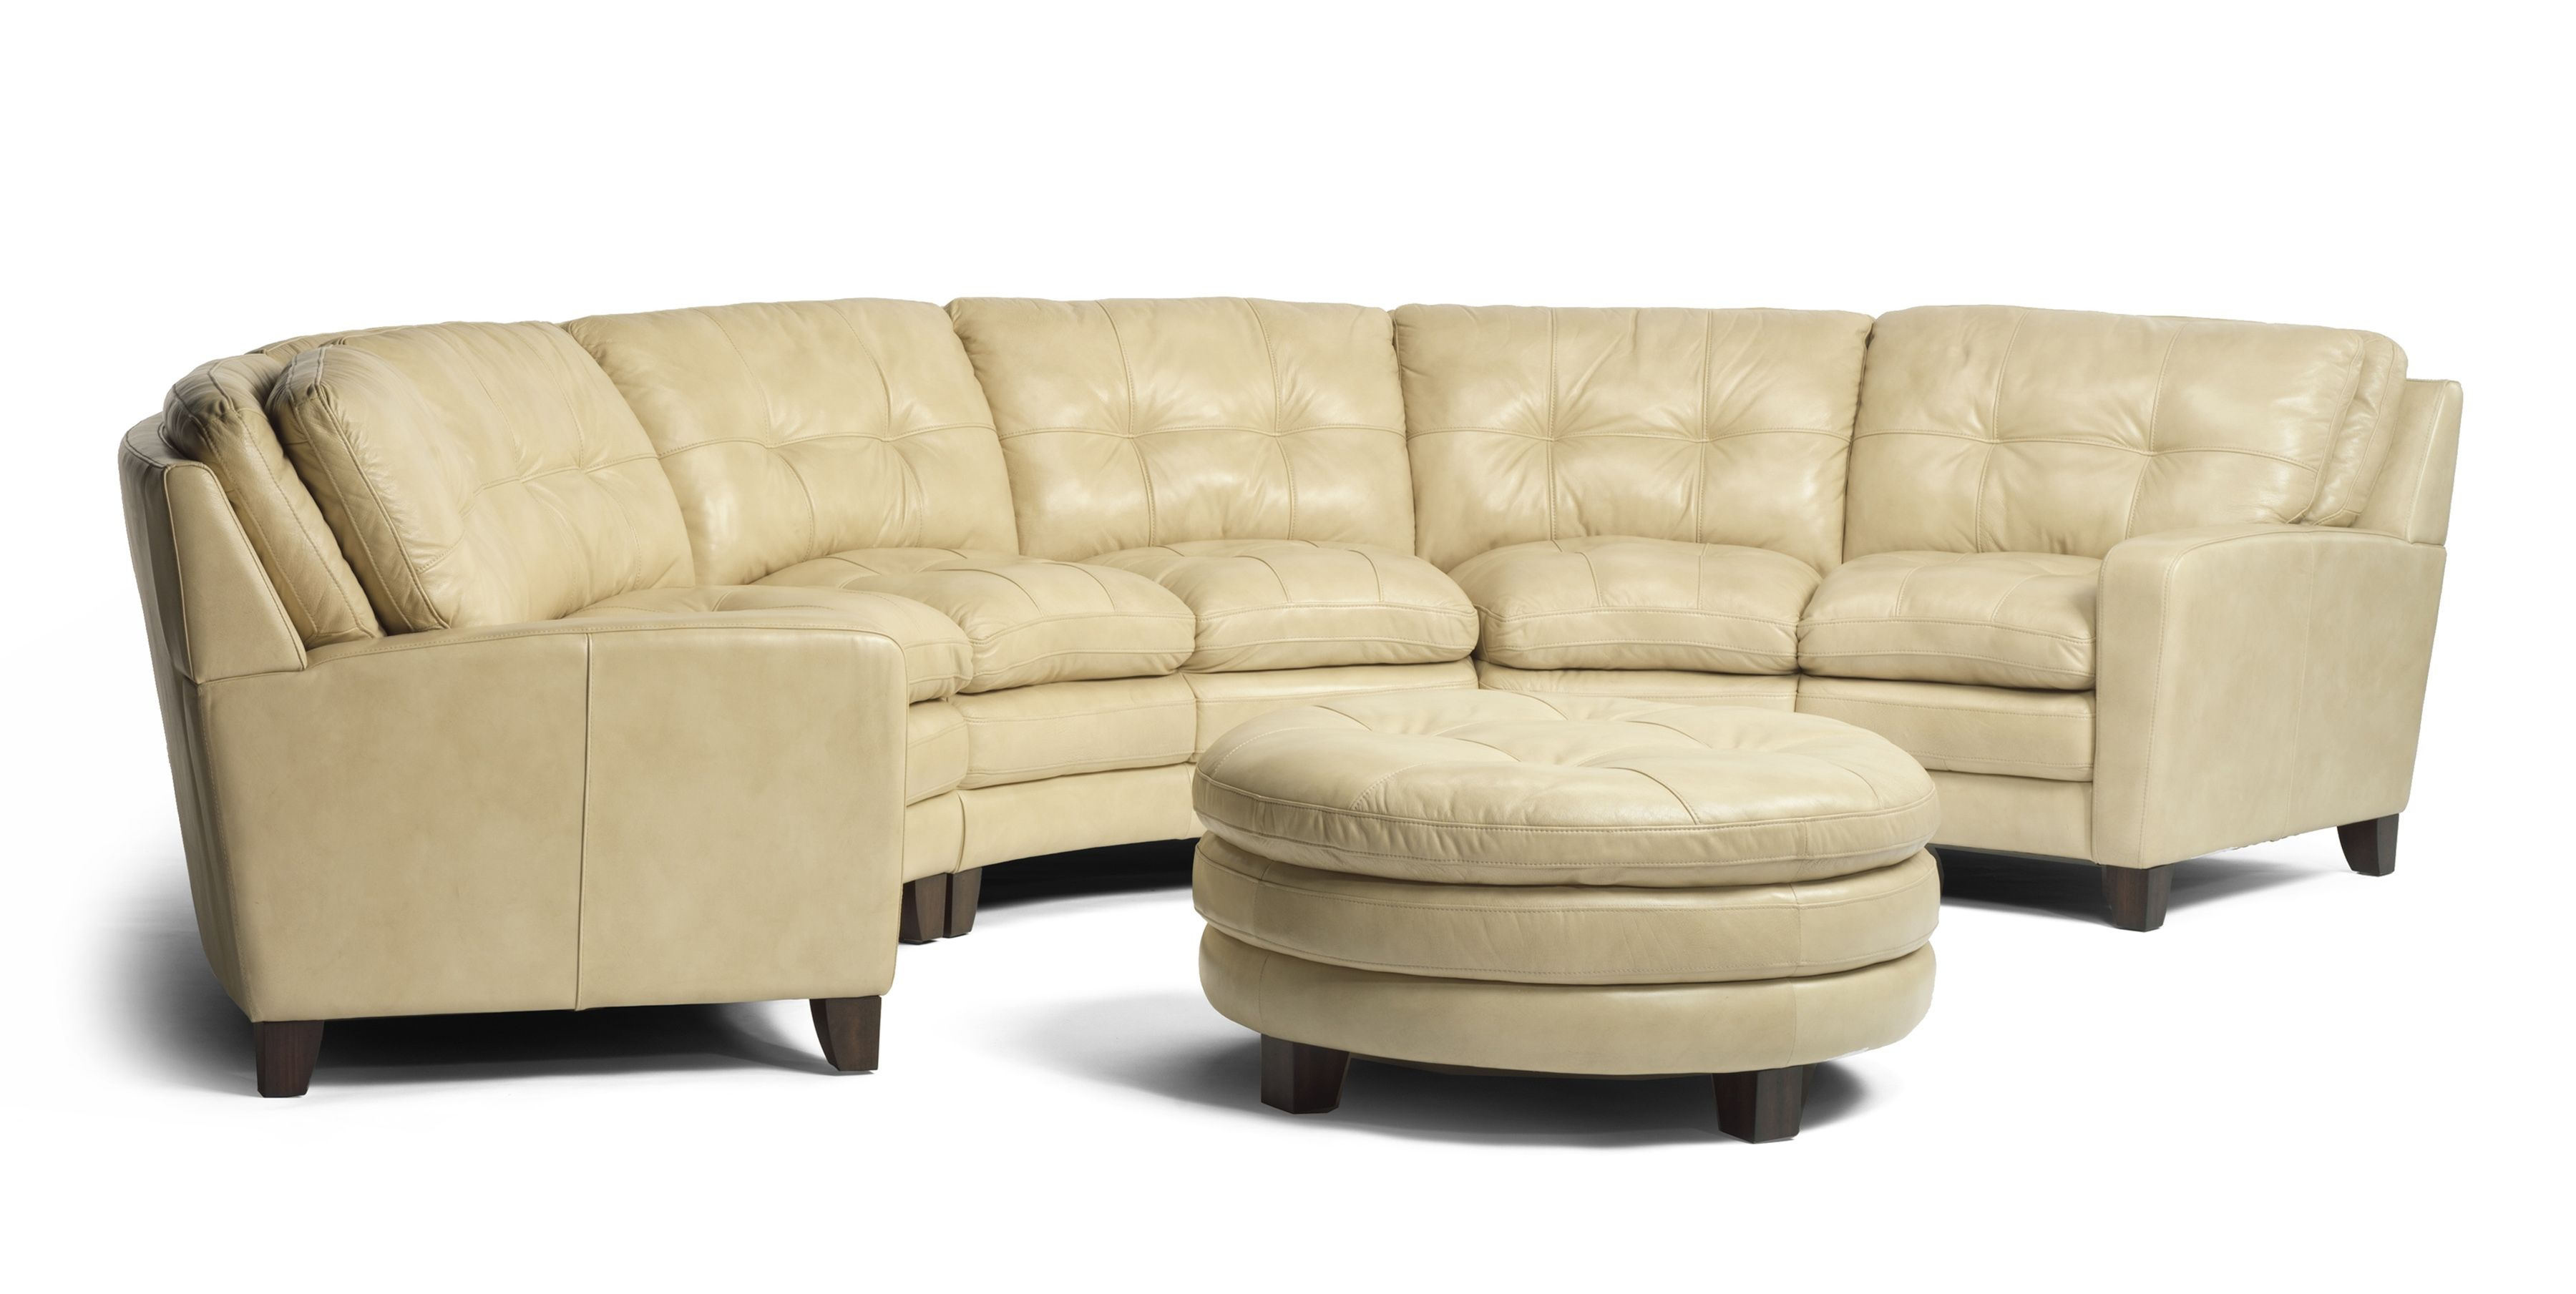 Gorgeous cream leather conversation sofa. www.awfurniture ...